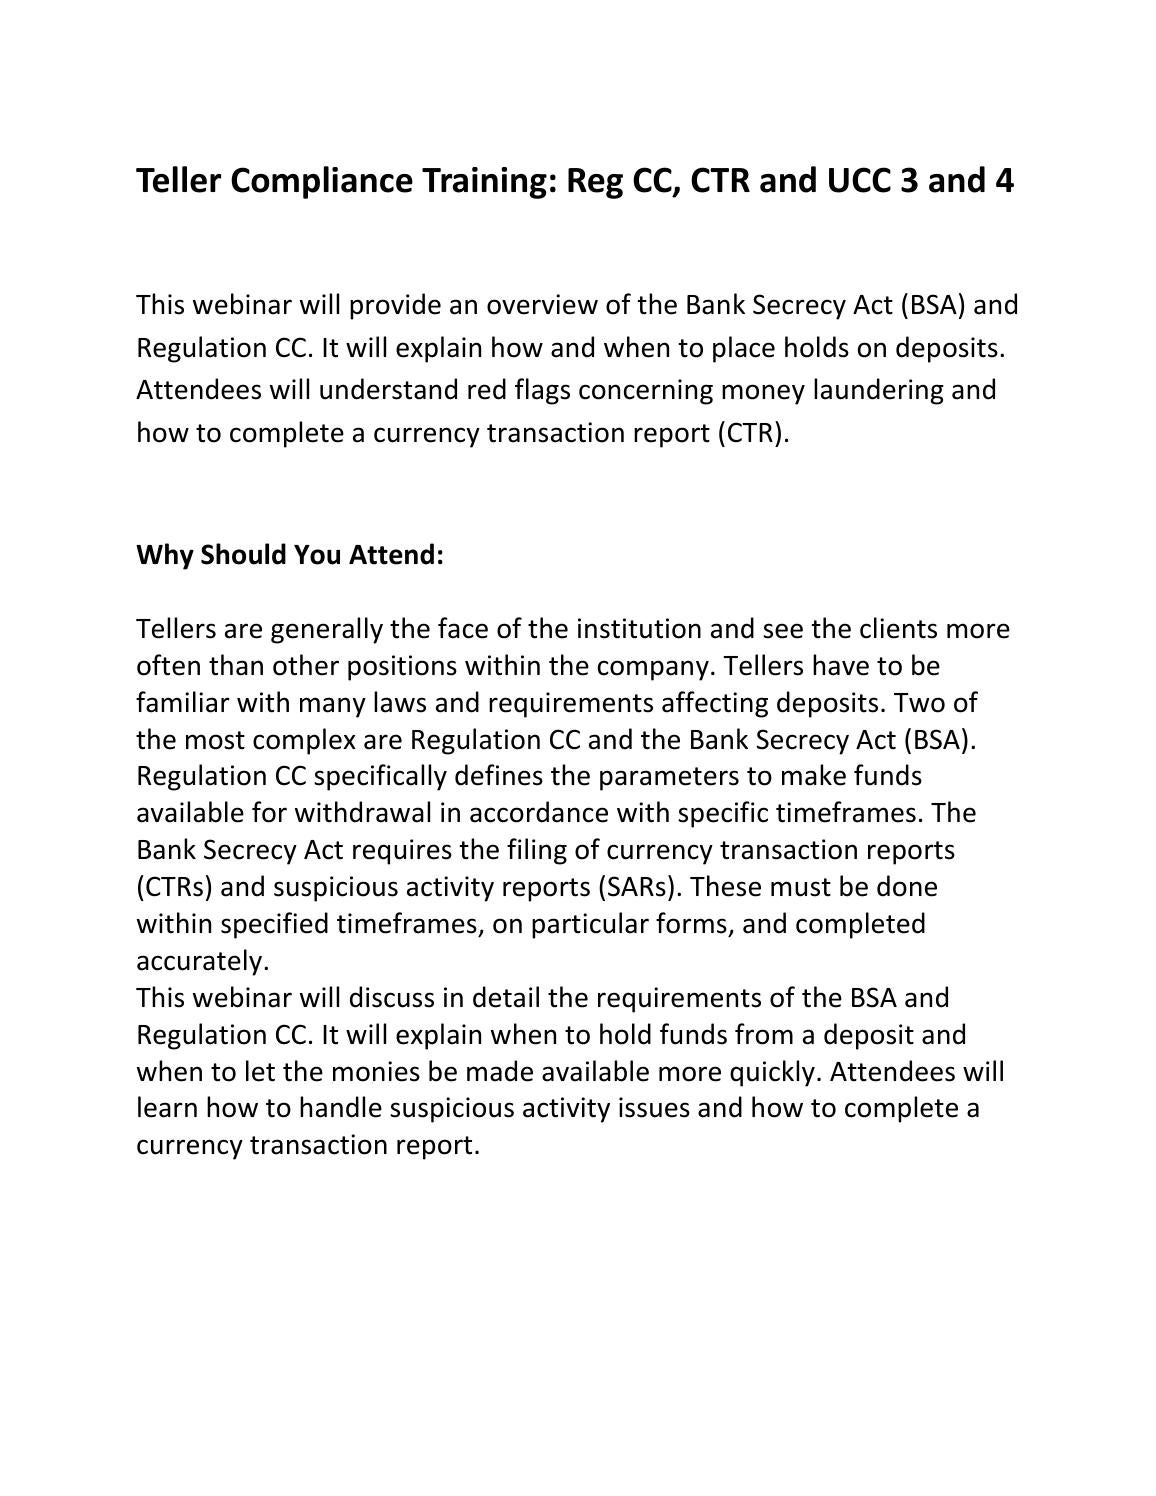 Reg Cc 2018 Changes Summary.pdf